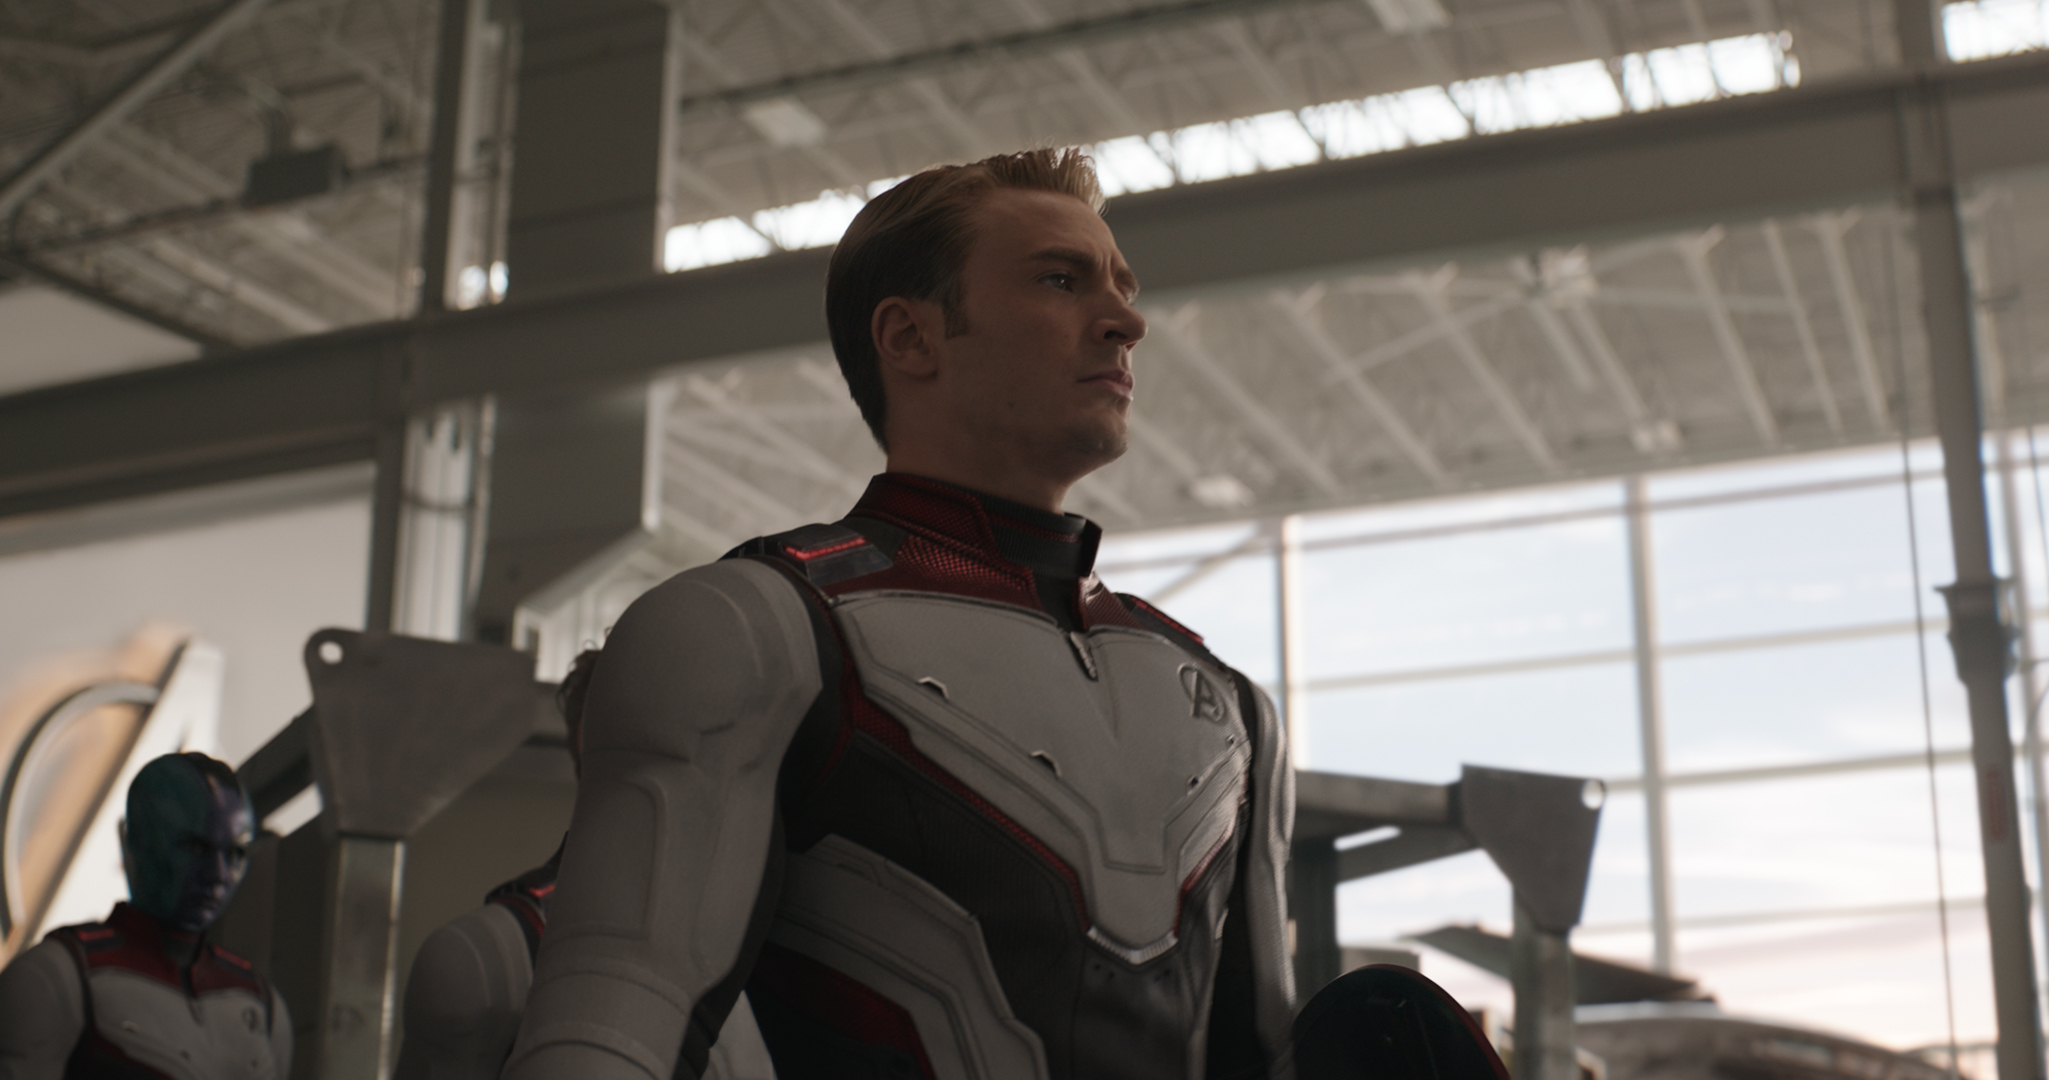 Avengers: Endgame' directors say 'maybe there's a story